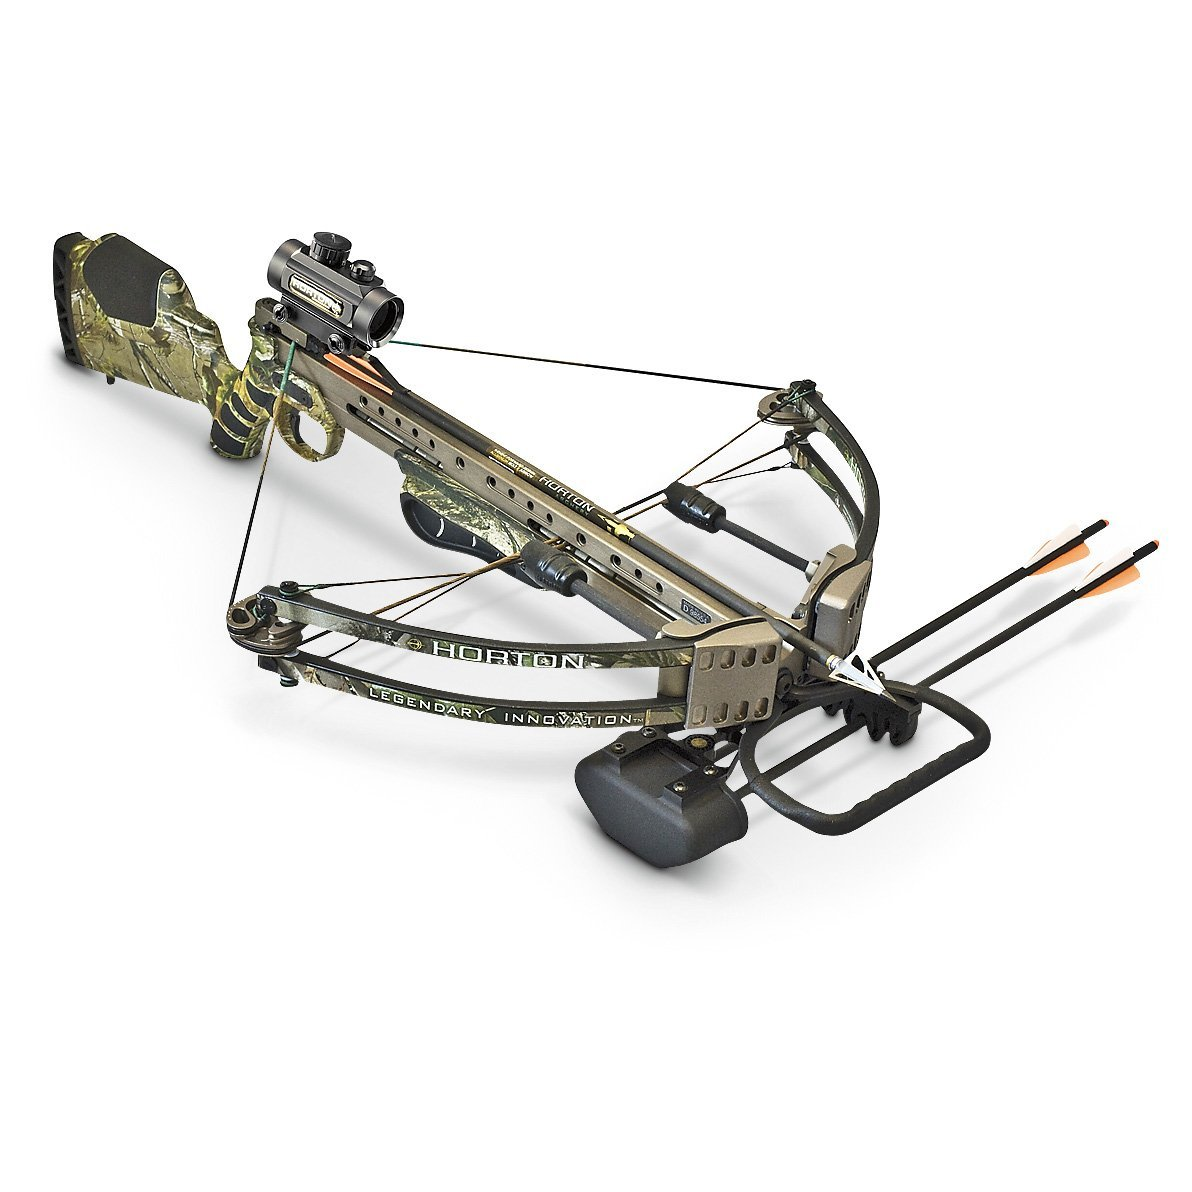 horton crossbow realtree team ultra lite express crossbows amazon trt kit camo bow compound hunting archery fishing accessories wood target